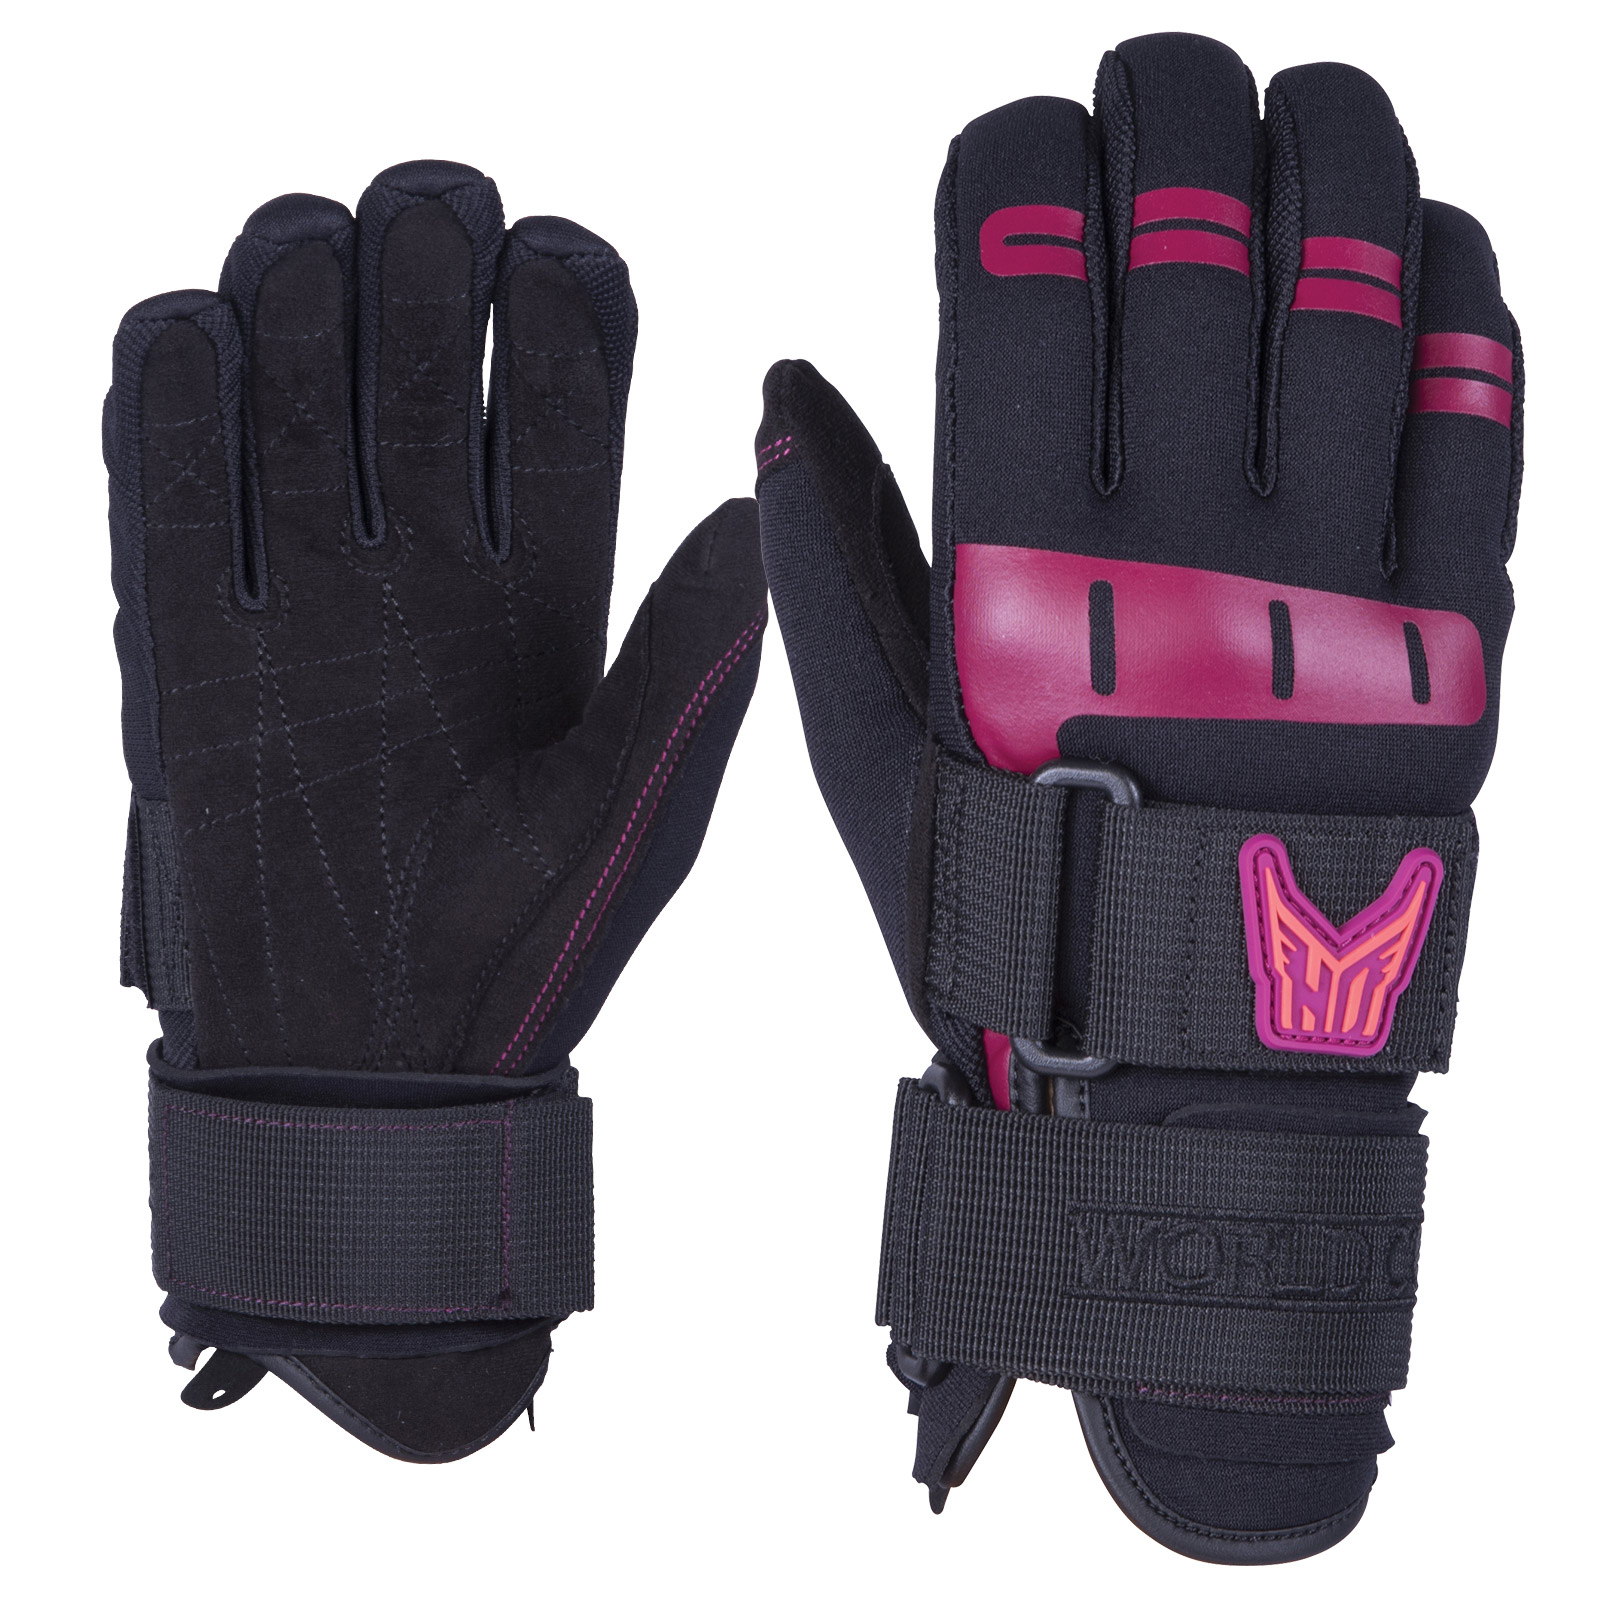 WORLD CUP WOMEN'S GLOVE HO SPORTS 2018